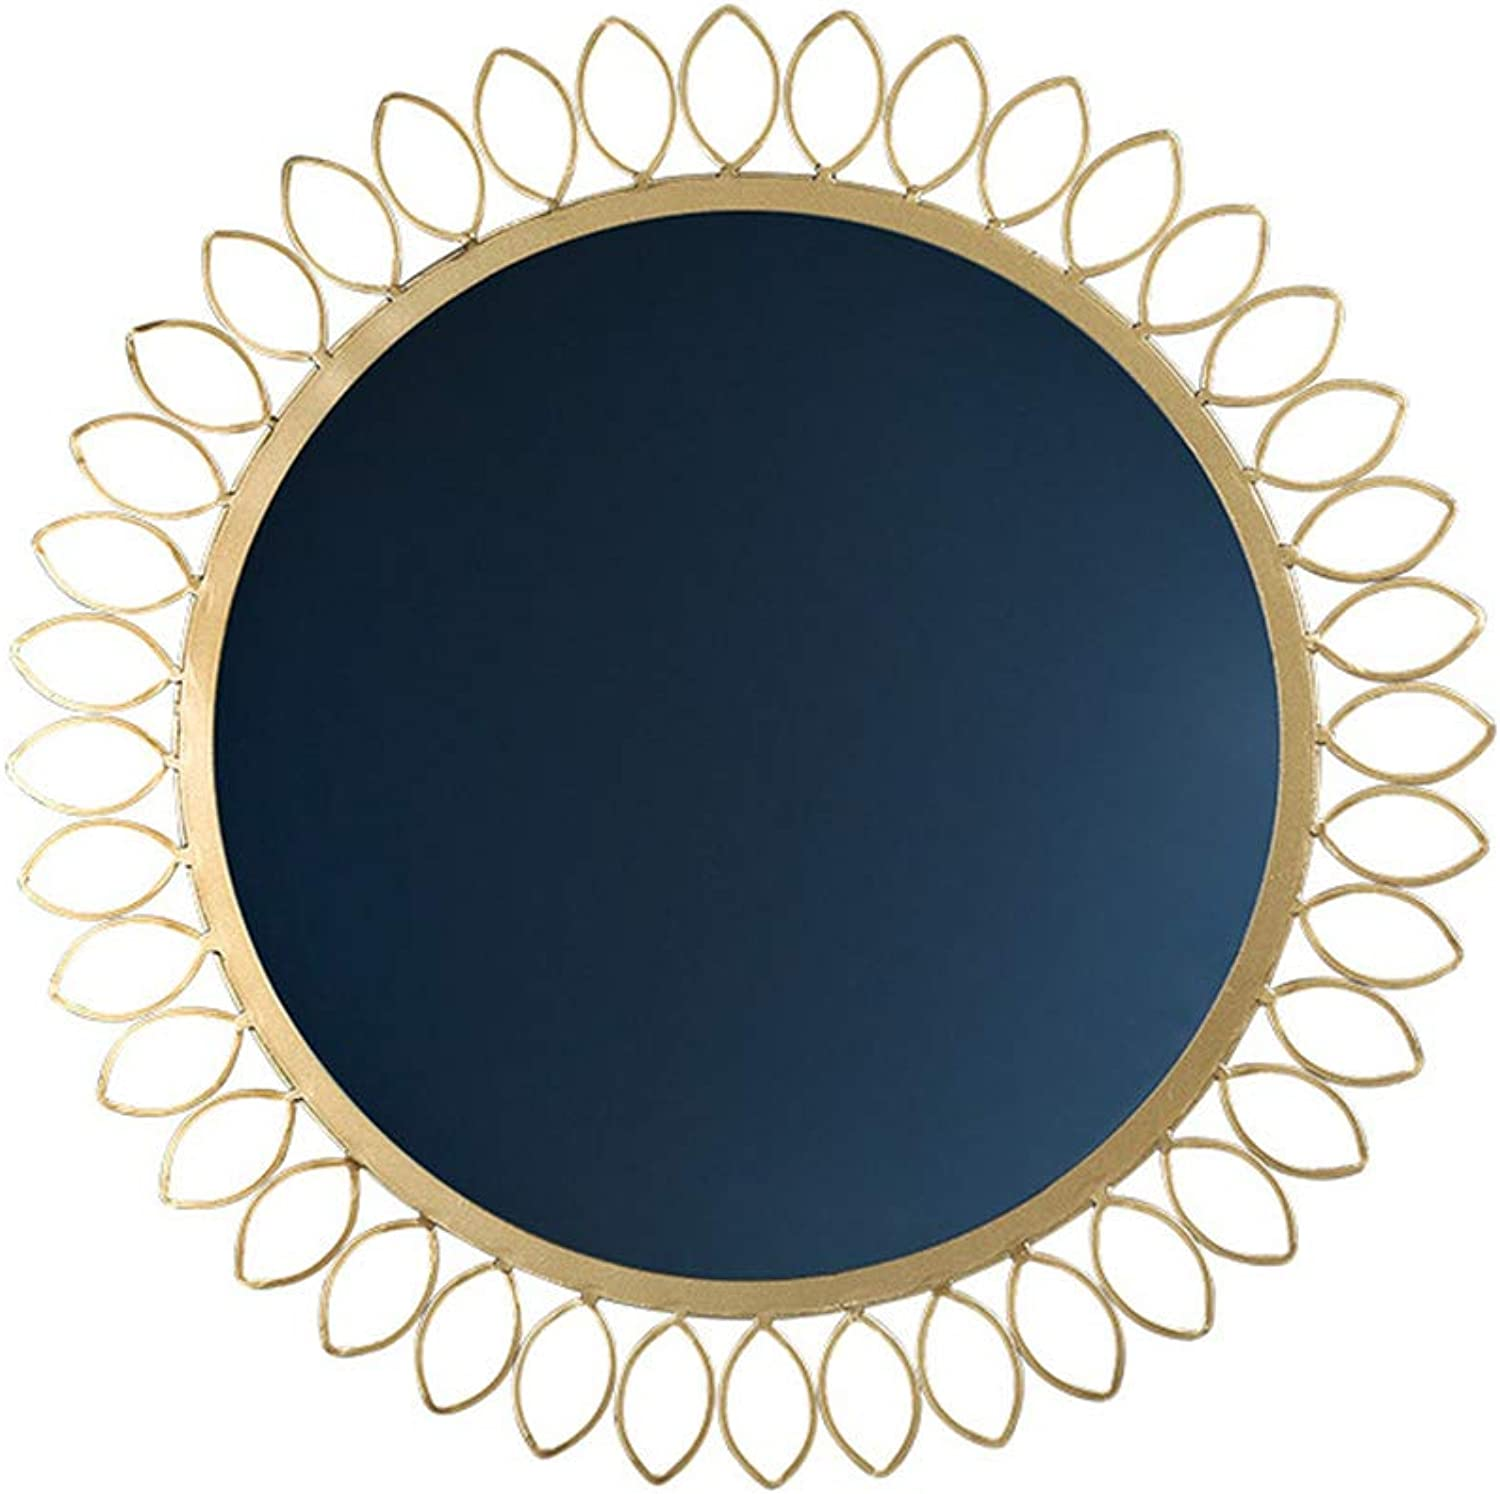 Round Bathroom Mirror gold Wrought Iron Border Bedroom Wall Mirror, Hotel Vanity Mirror, Shaving Mirror, Size 62cm